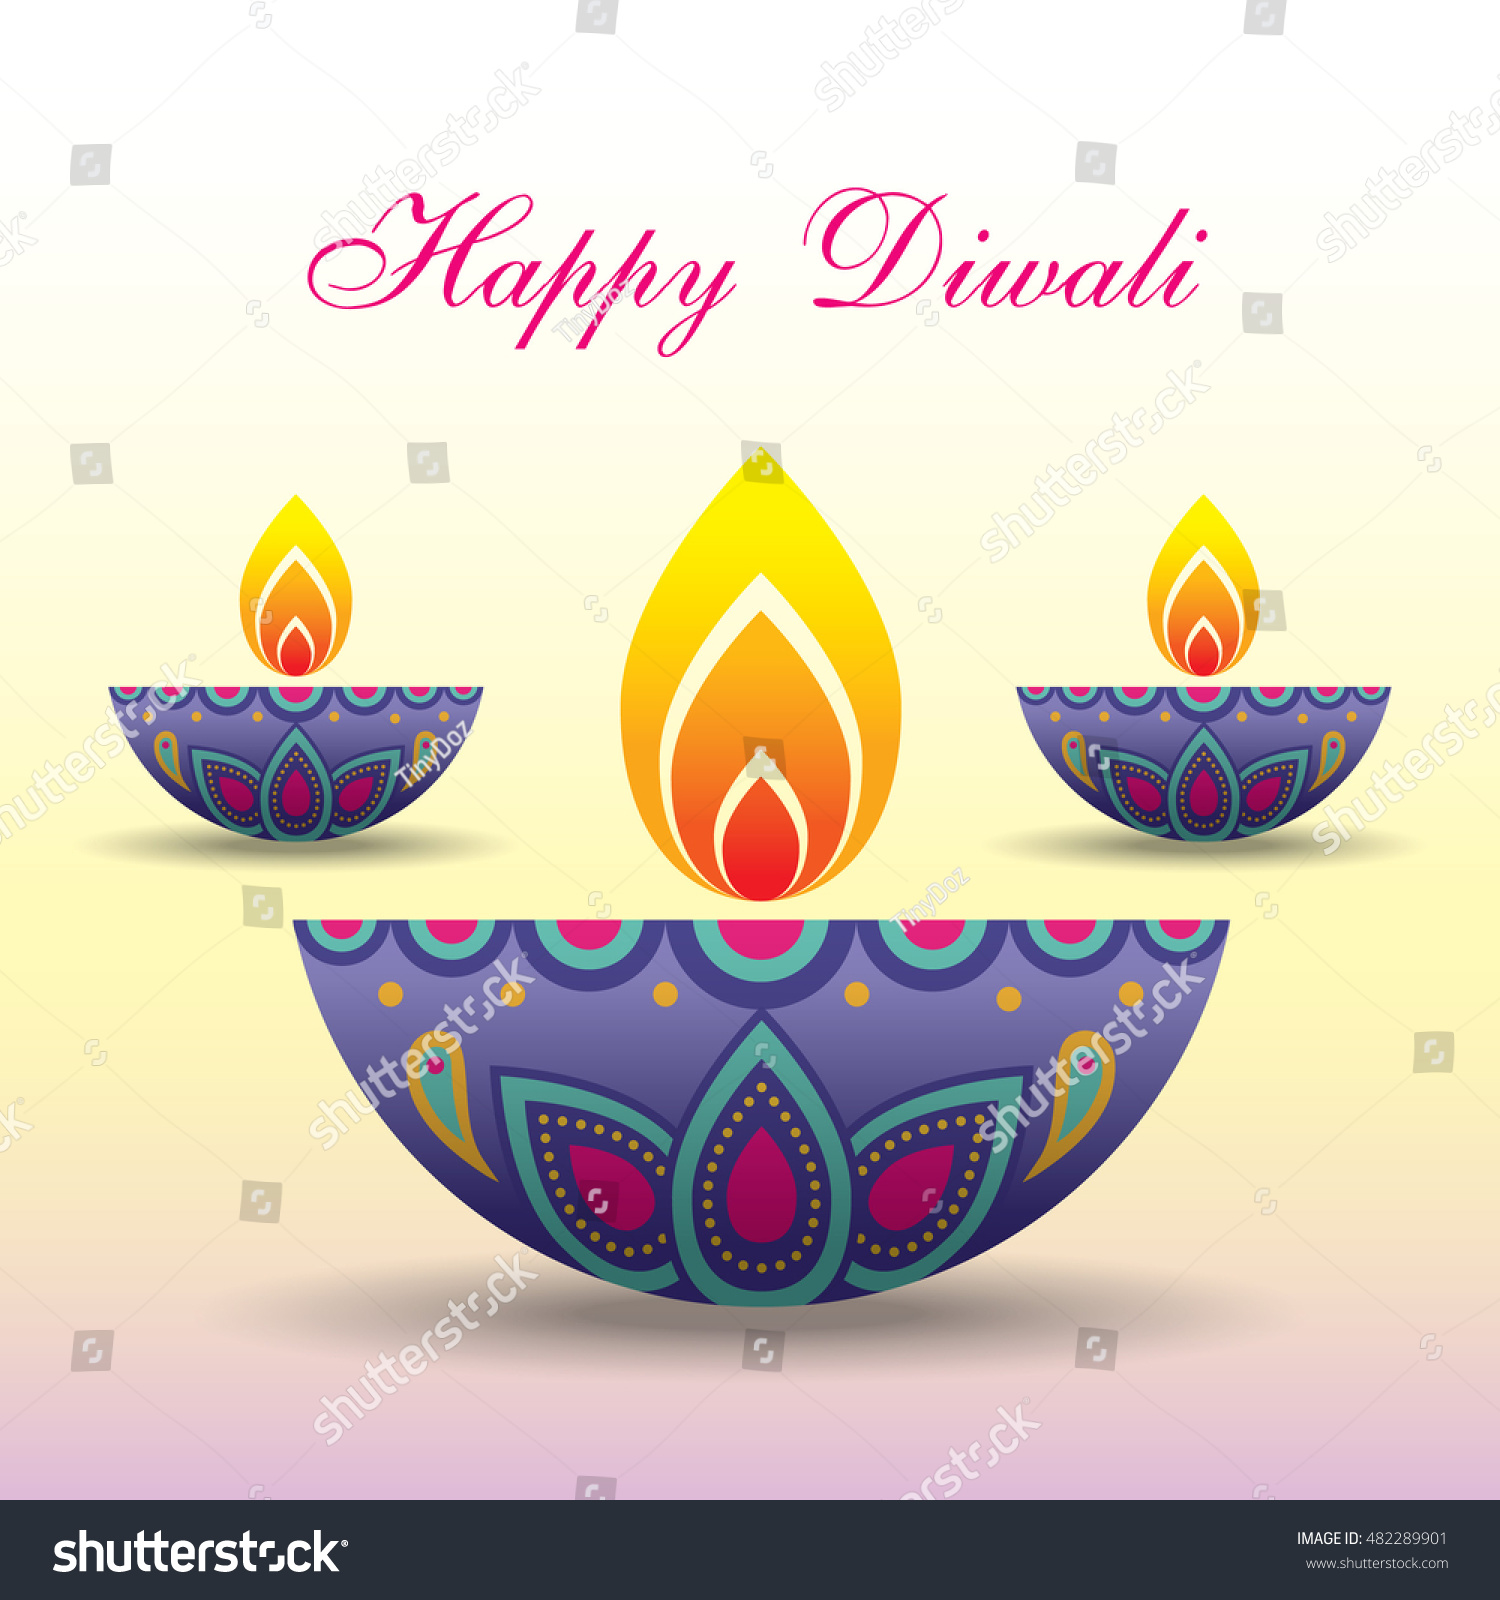 Diwali Deepavali Greeting Beautiful Burning Diwali Stock Vector